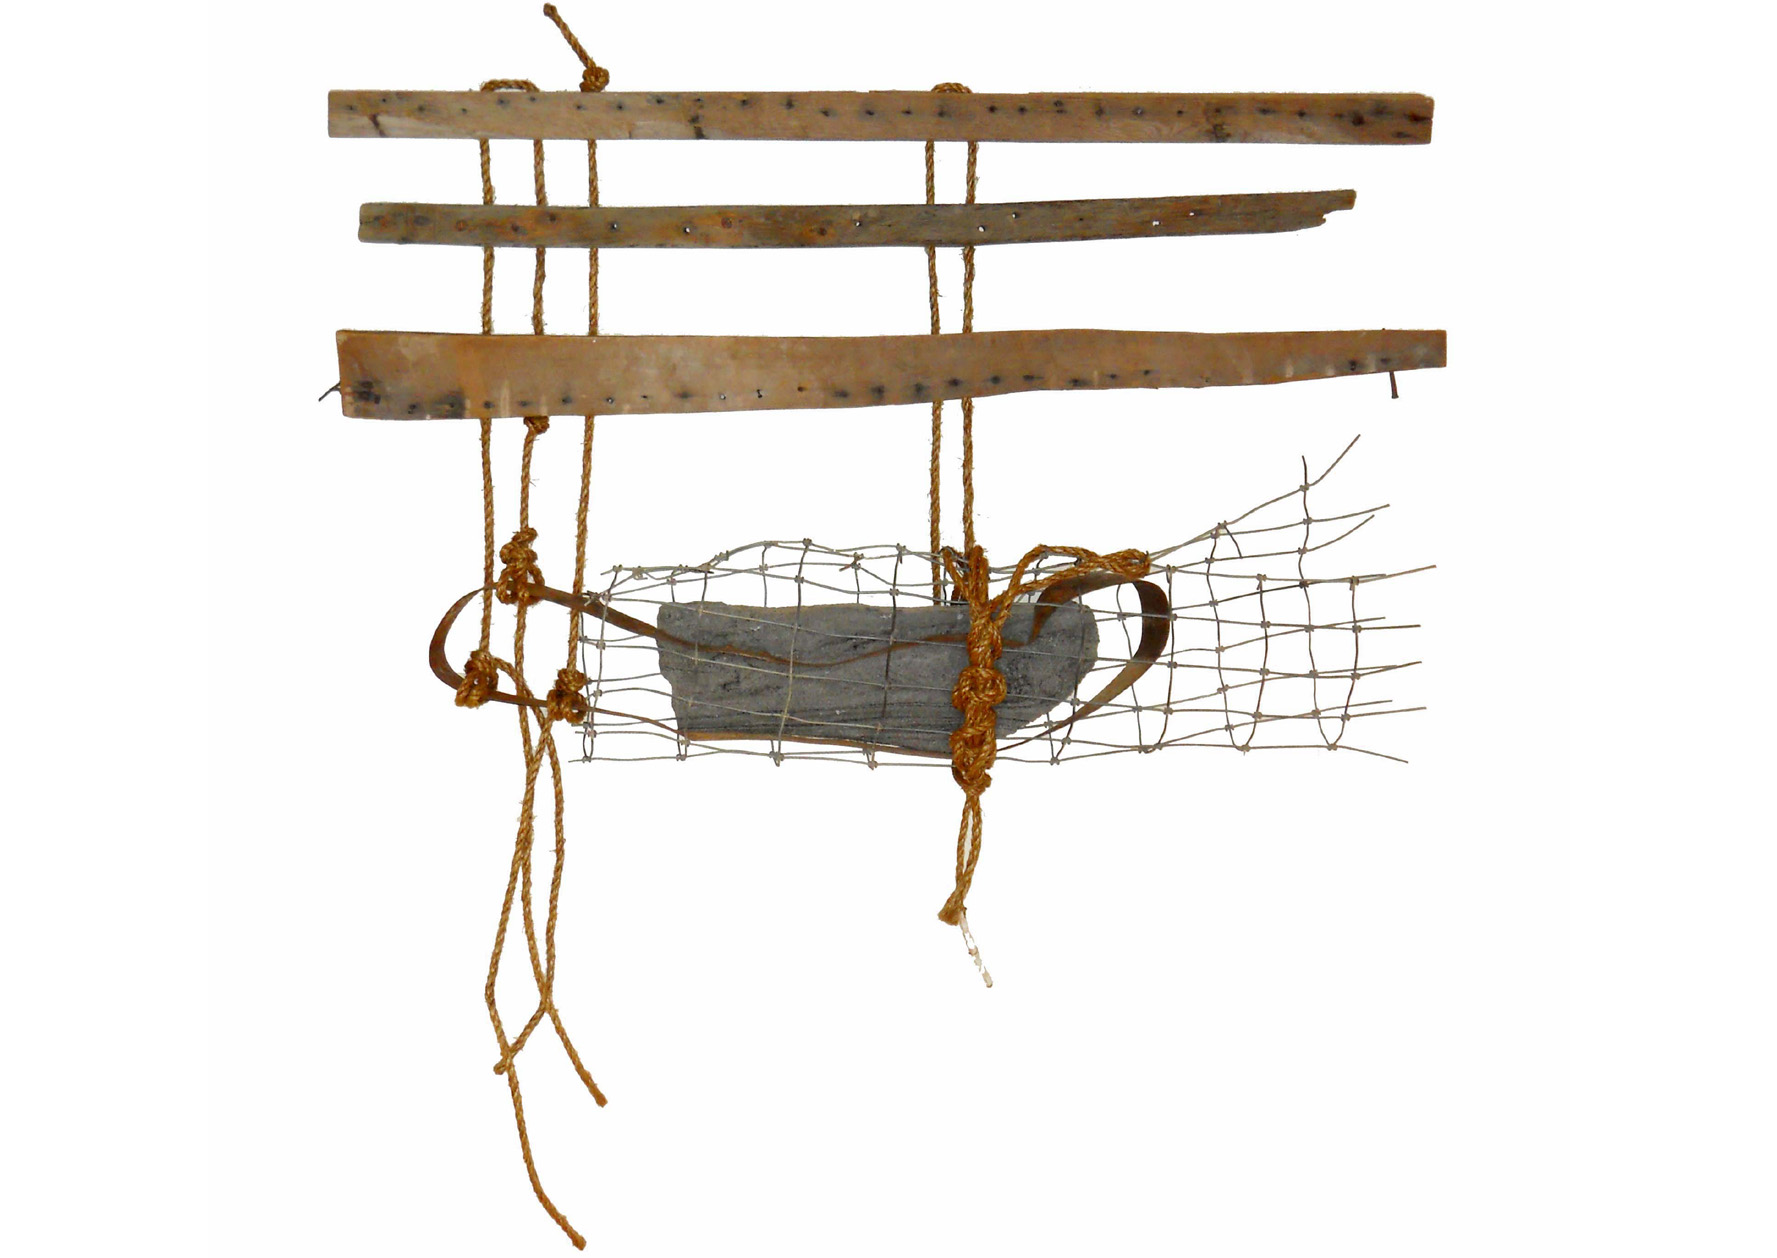 Vestige, 2015 <br> wood, steel, rope, stone <br> (42'' x 46.5'' x 7'')